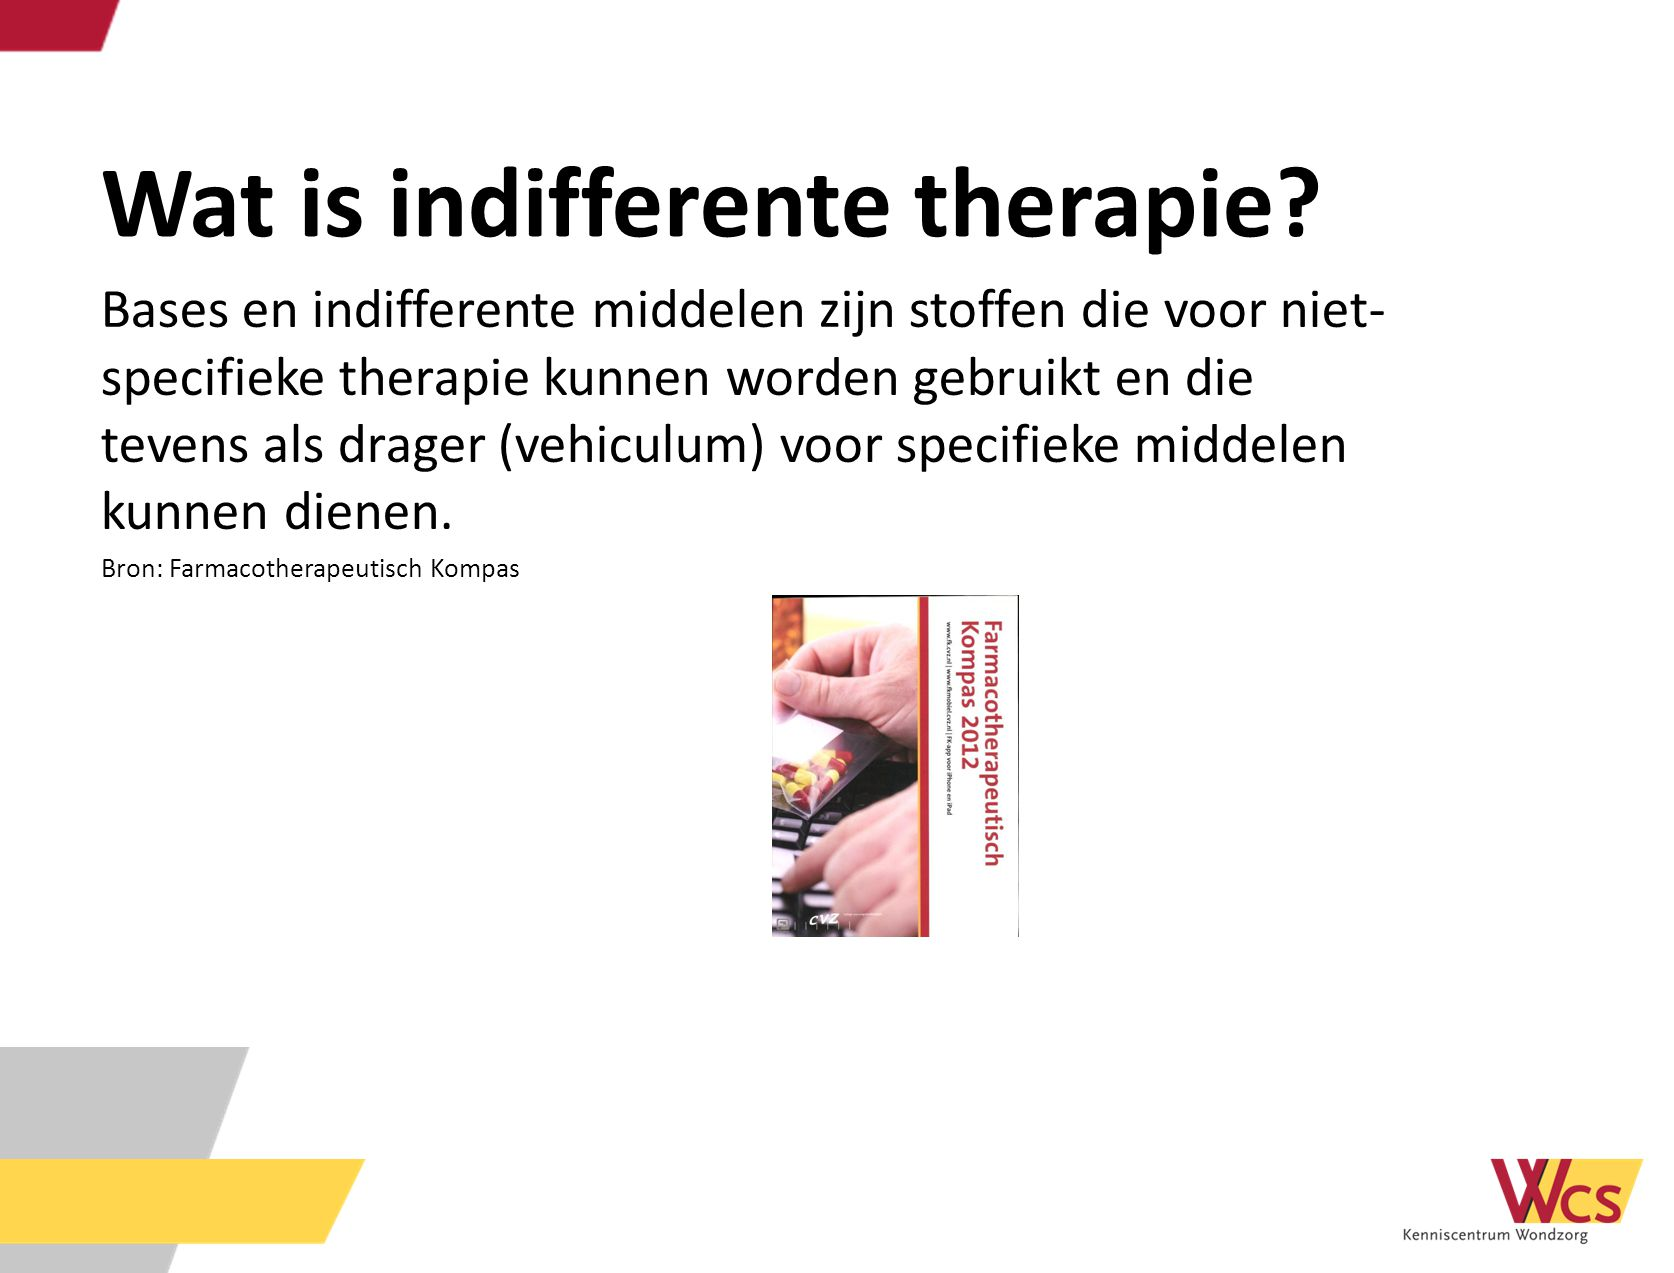 Wat is indifferente therapie